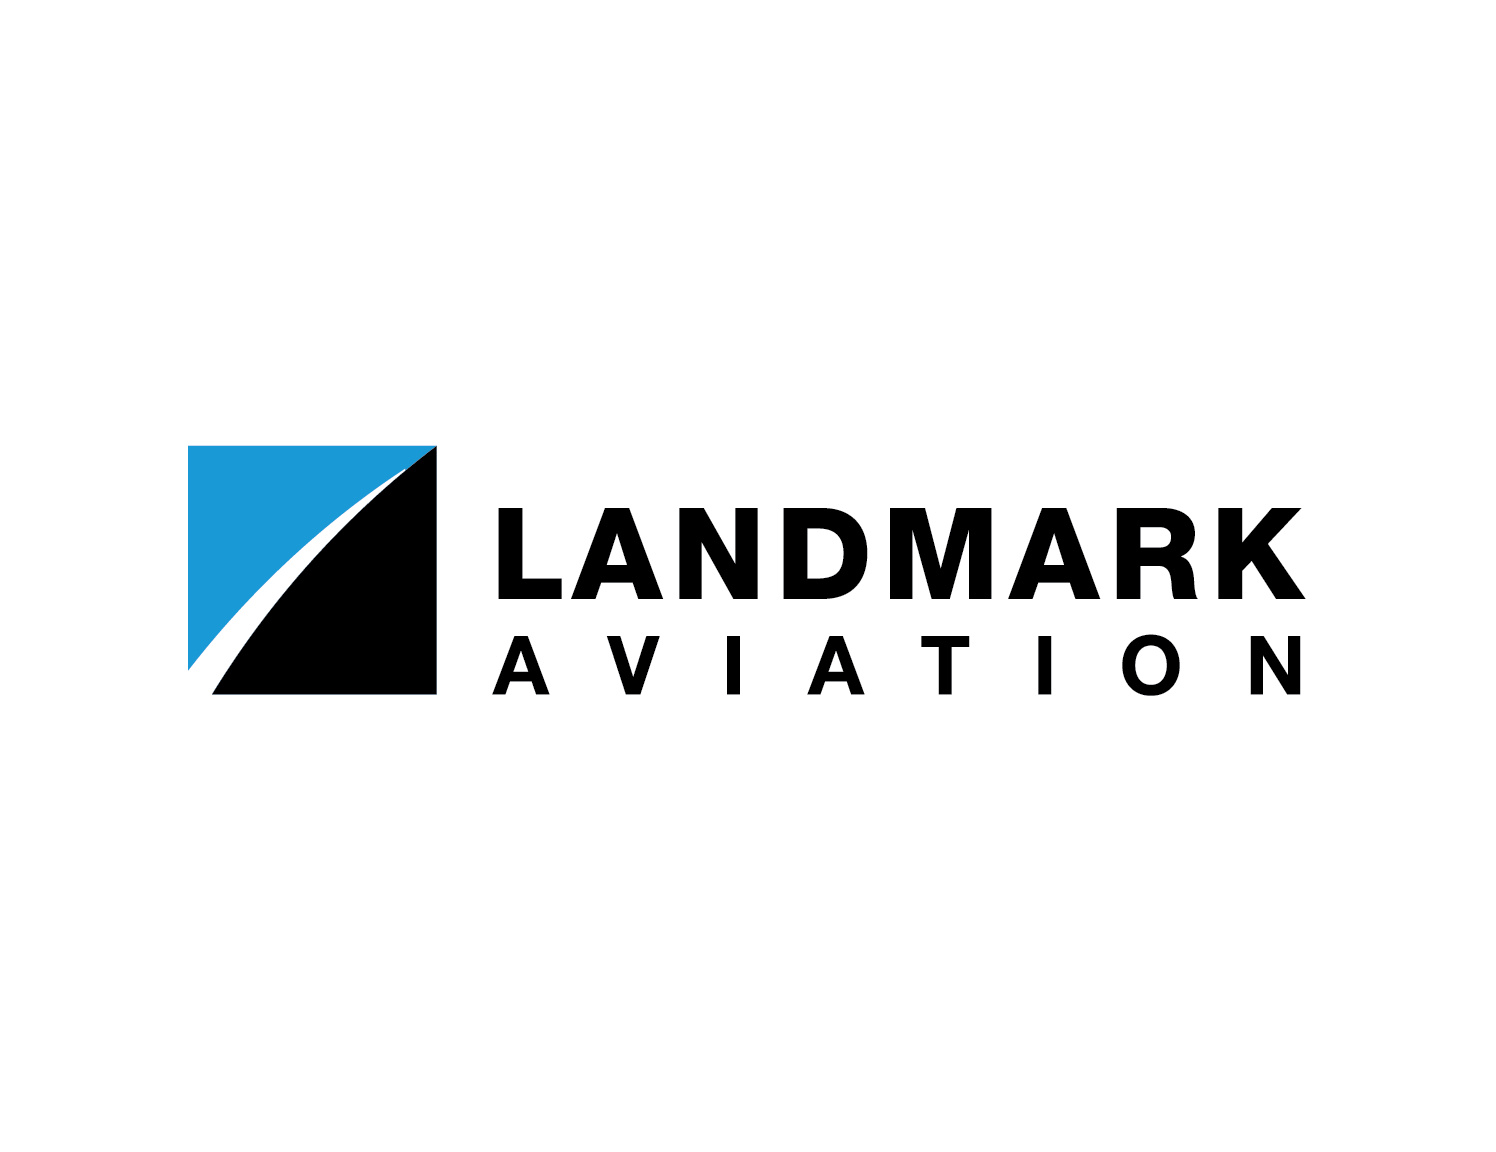 landmark aviation logo